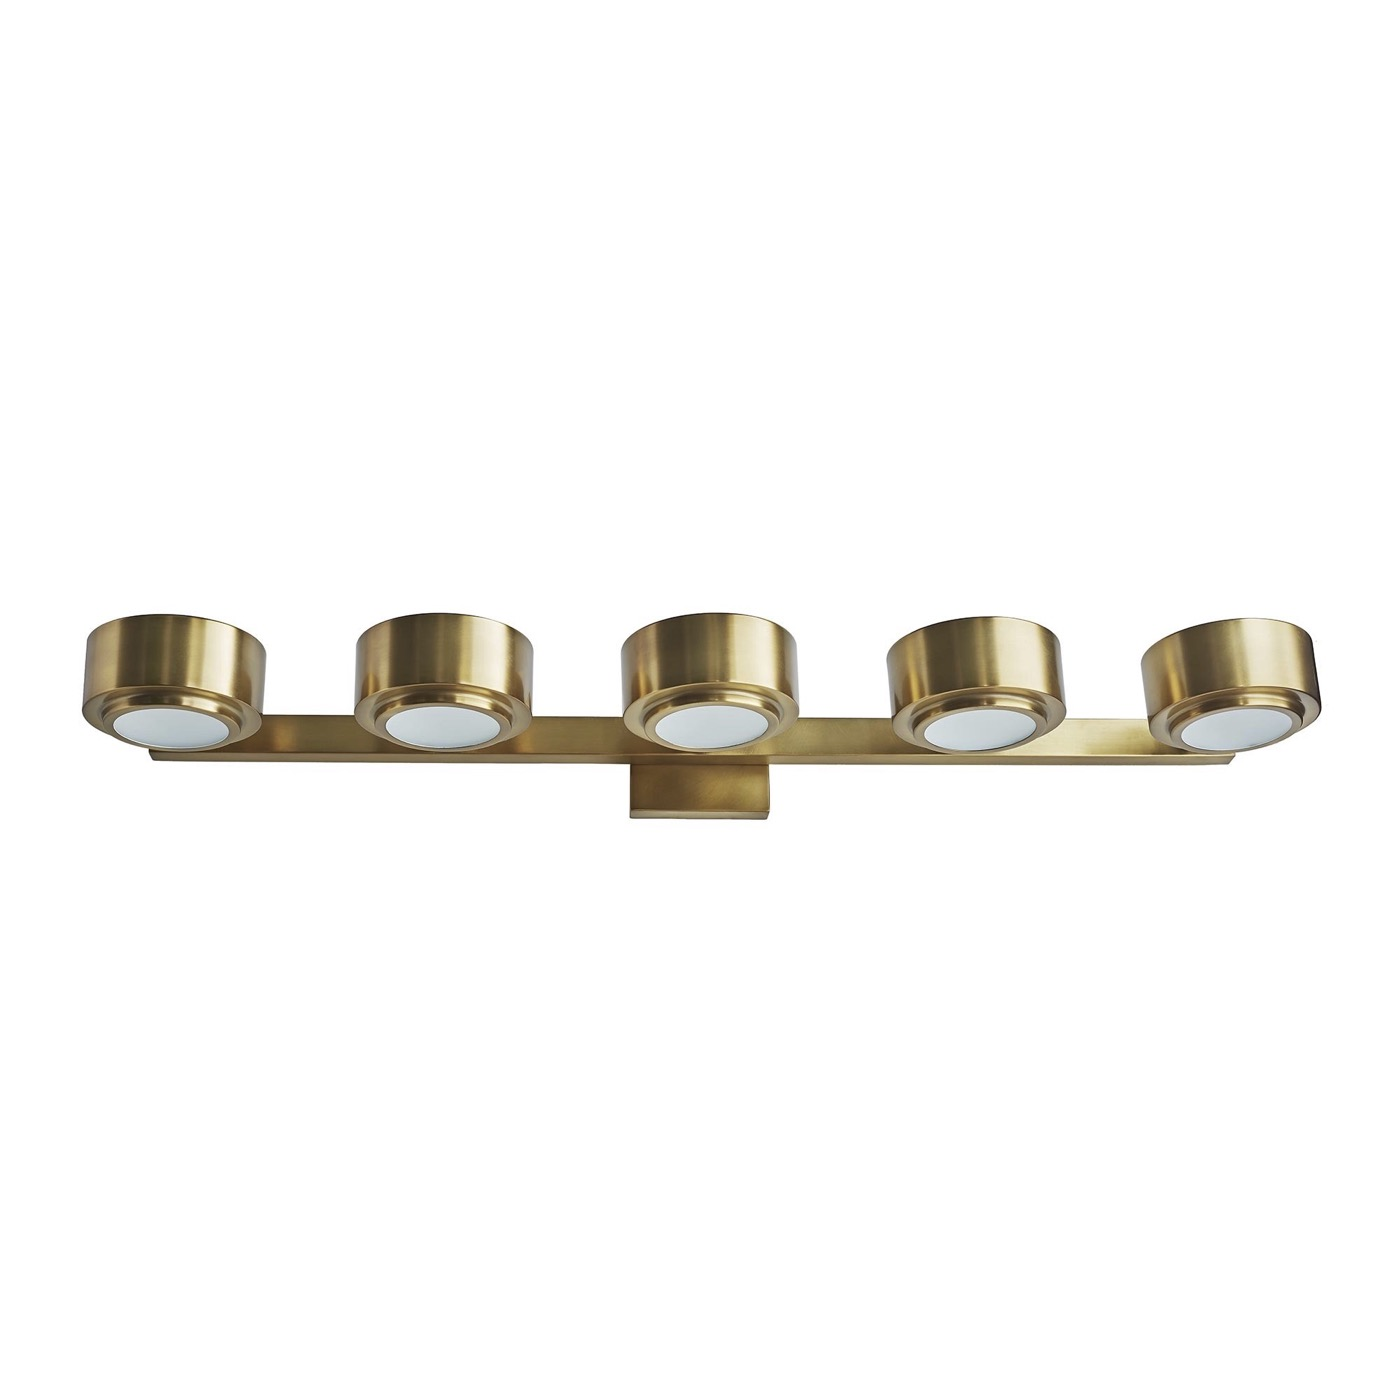 Von 5-Light Vanity Fixture | Antique Brass